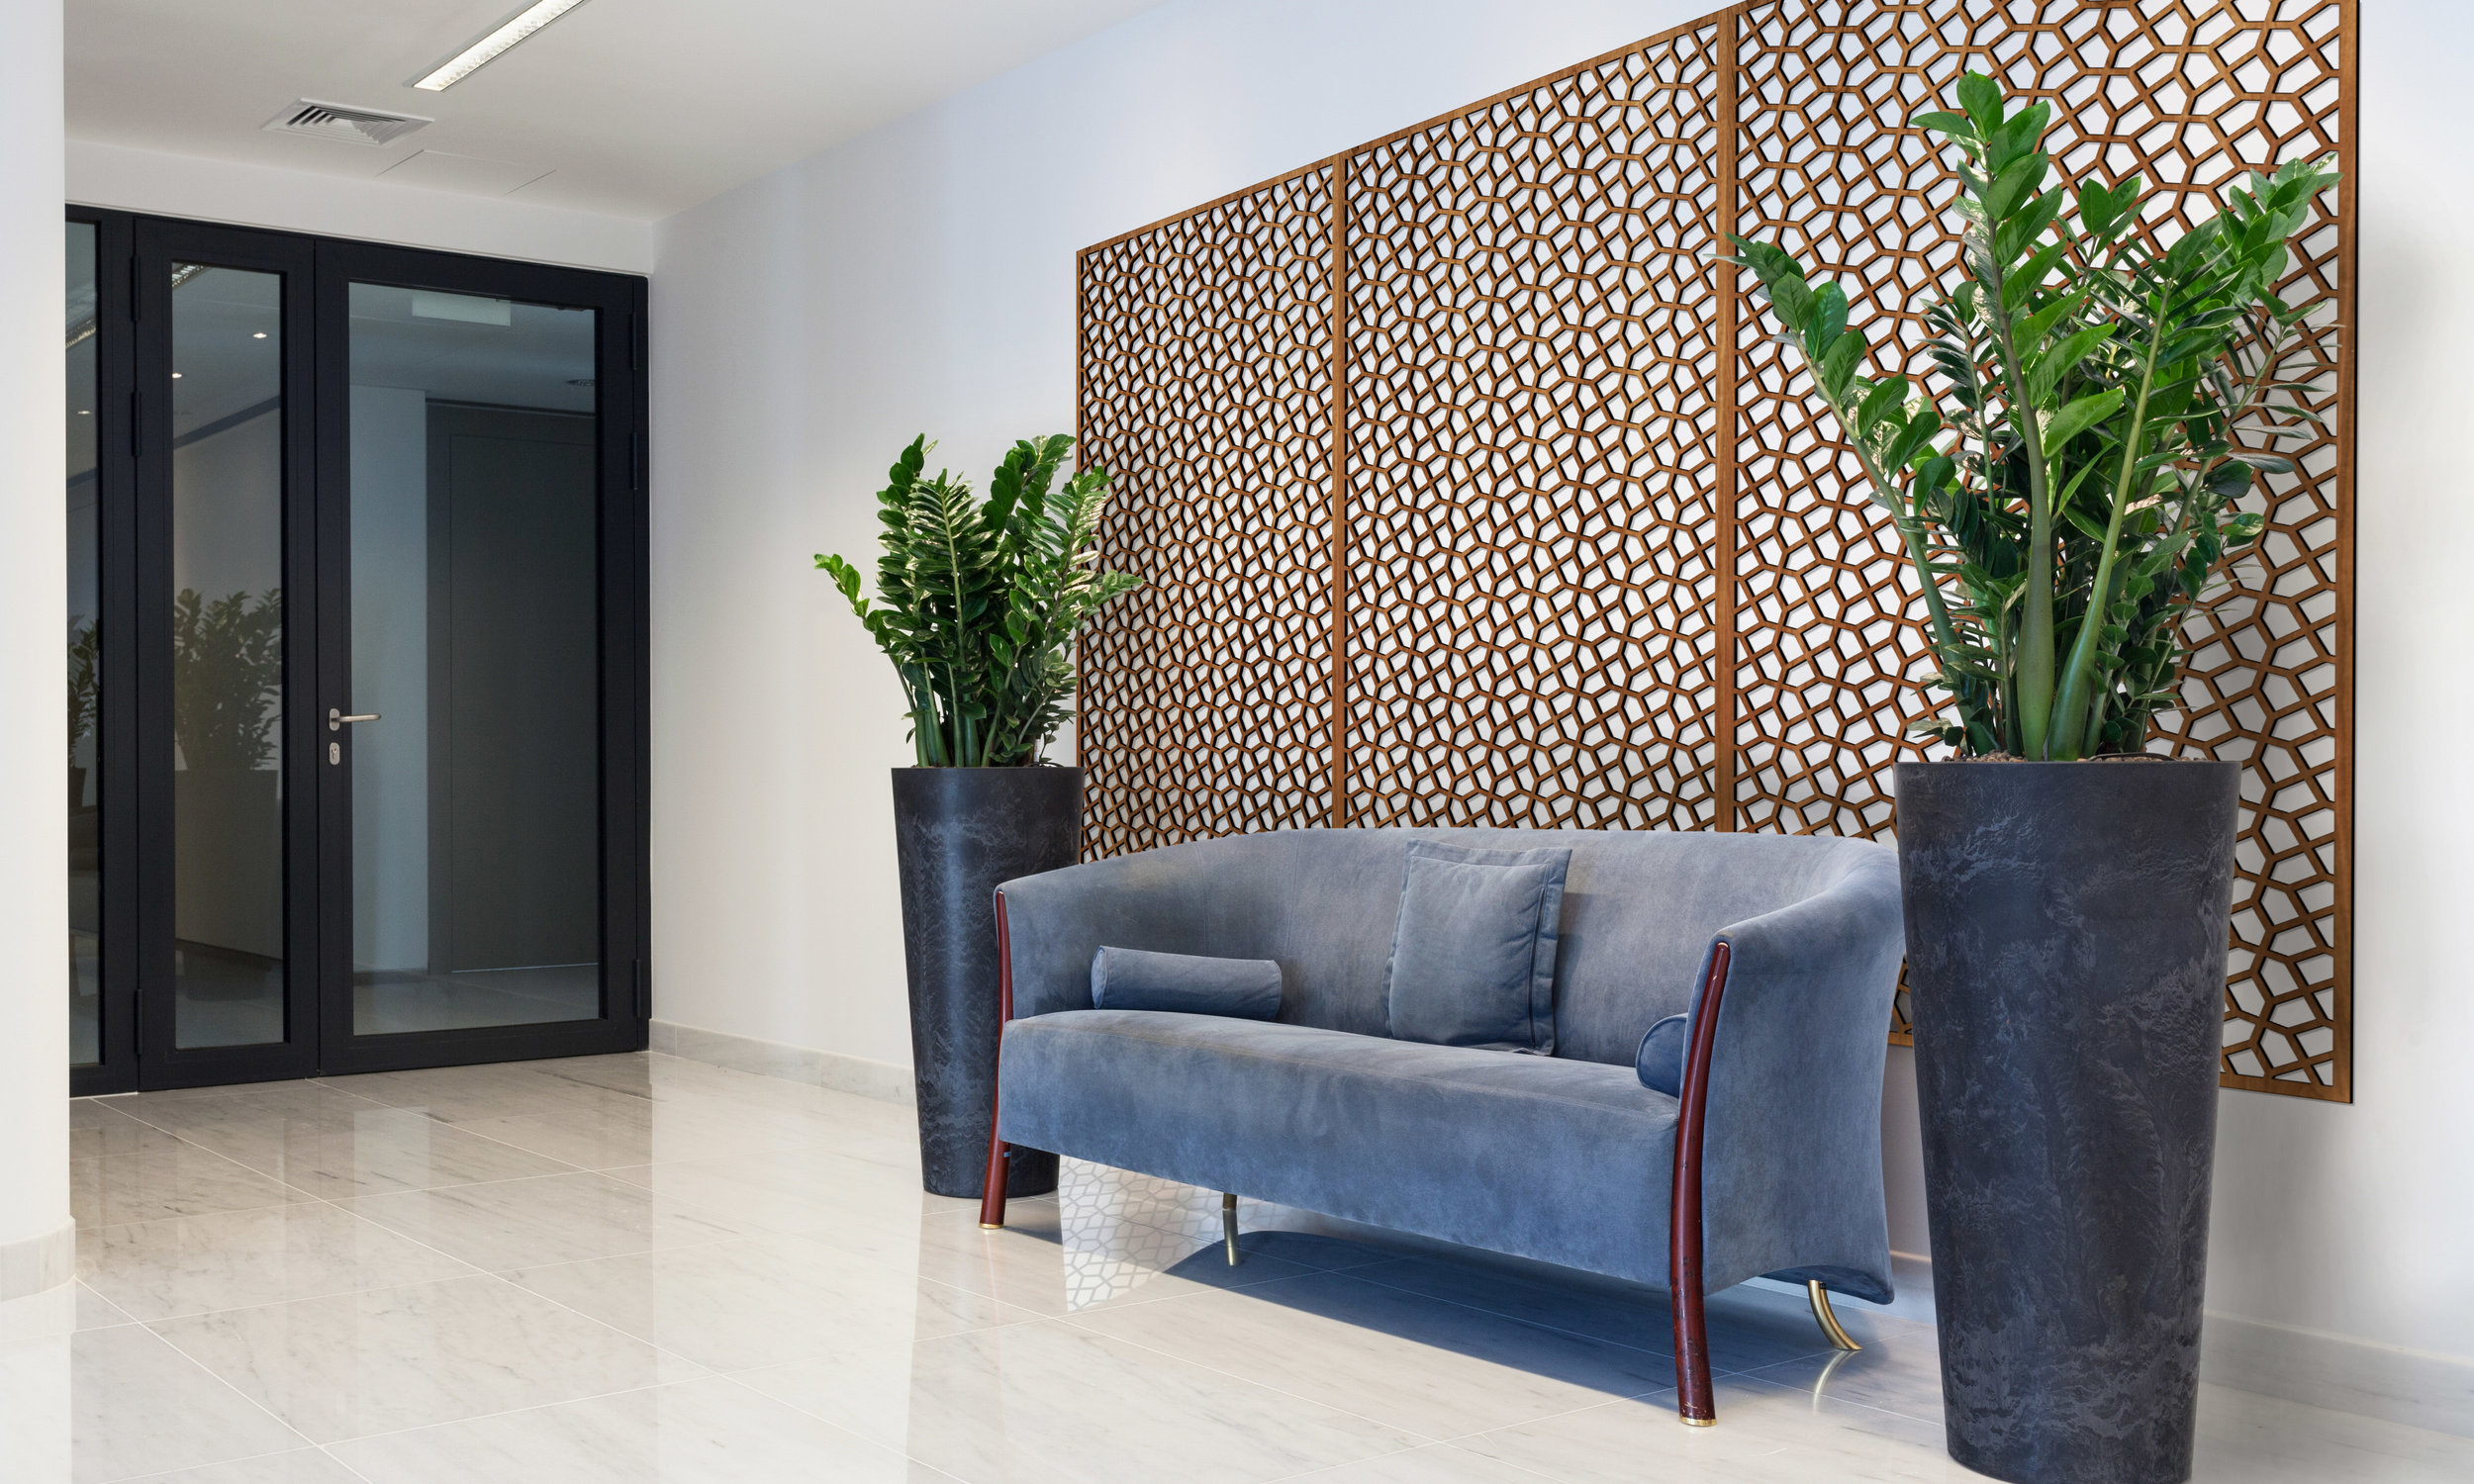 Installation Rendering A   Woven Links decorative office wall panel - shown in cherry